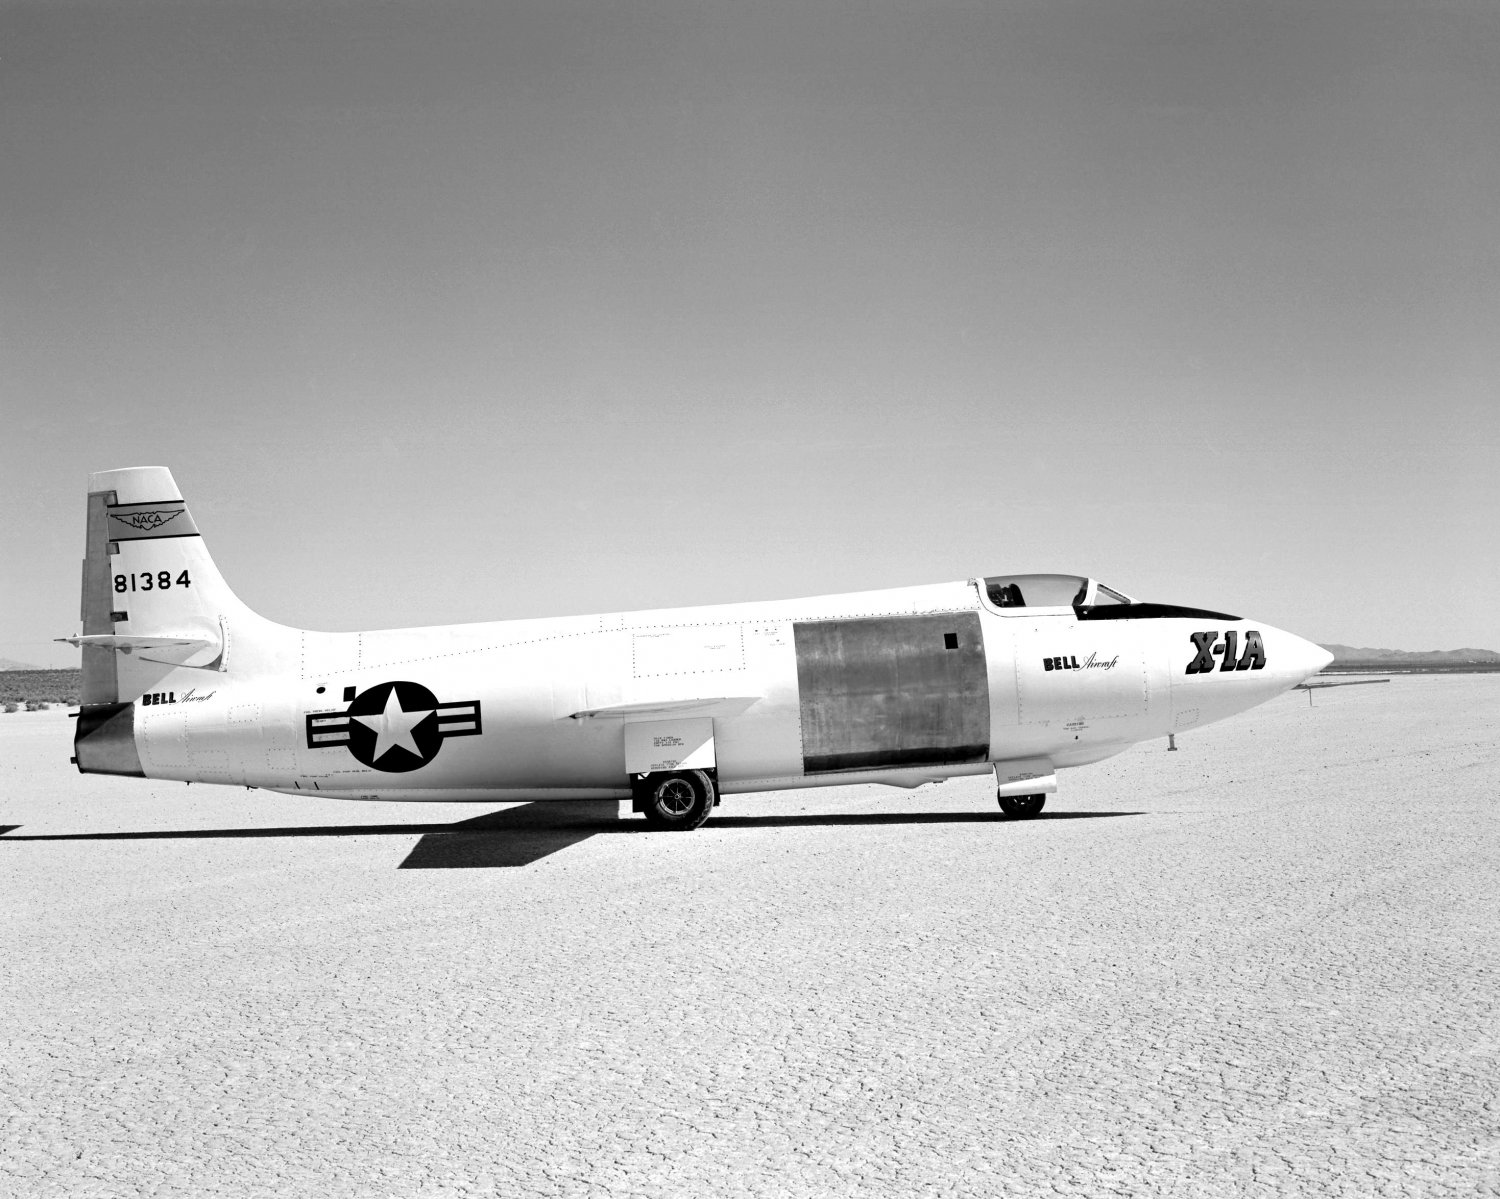 BELL X-1A AIRCRAFT ON ROGERS DRY LAKEBED IN 1955 - 8X10 NASA PHOTO (EP-404)